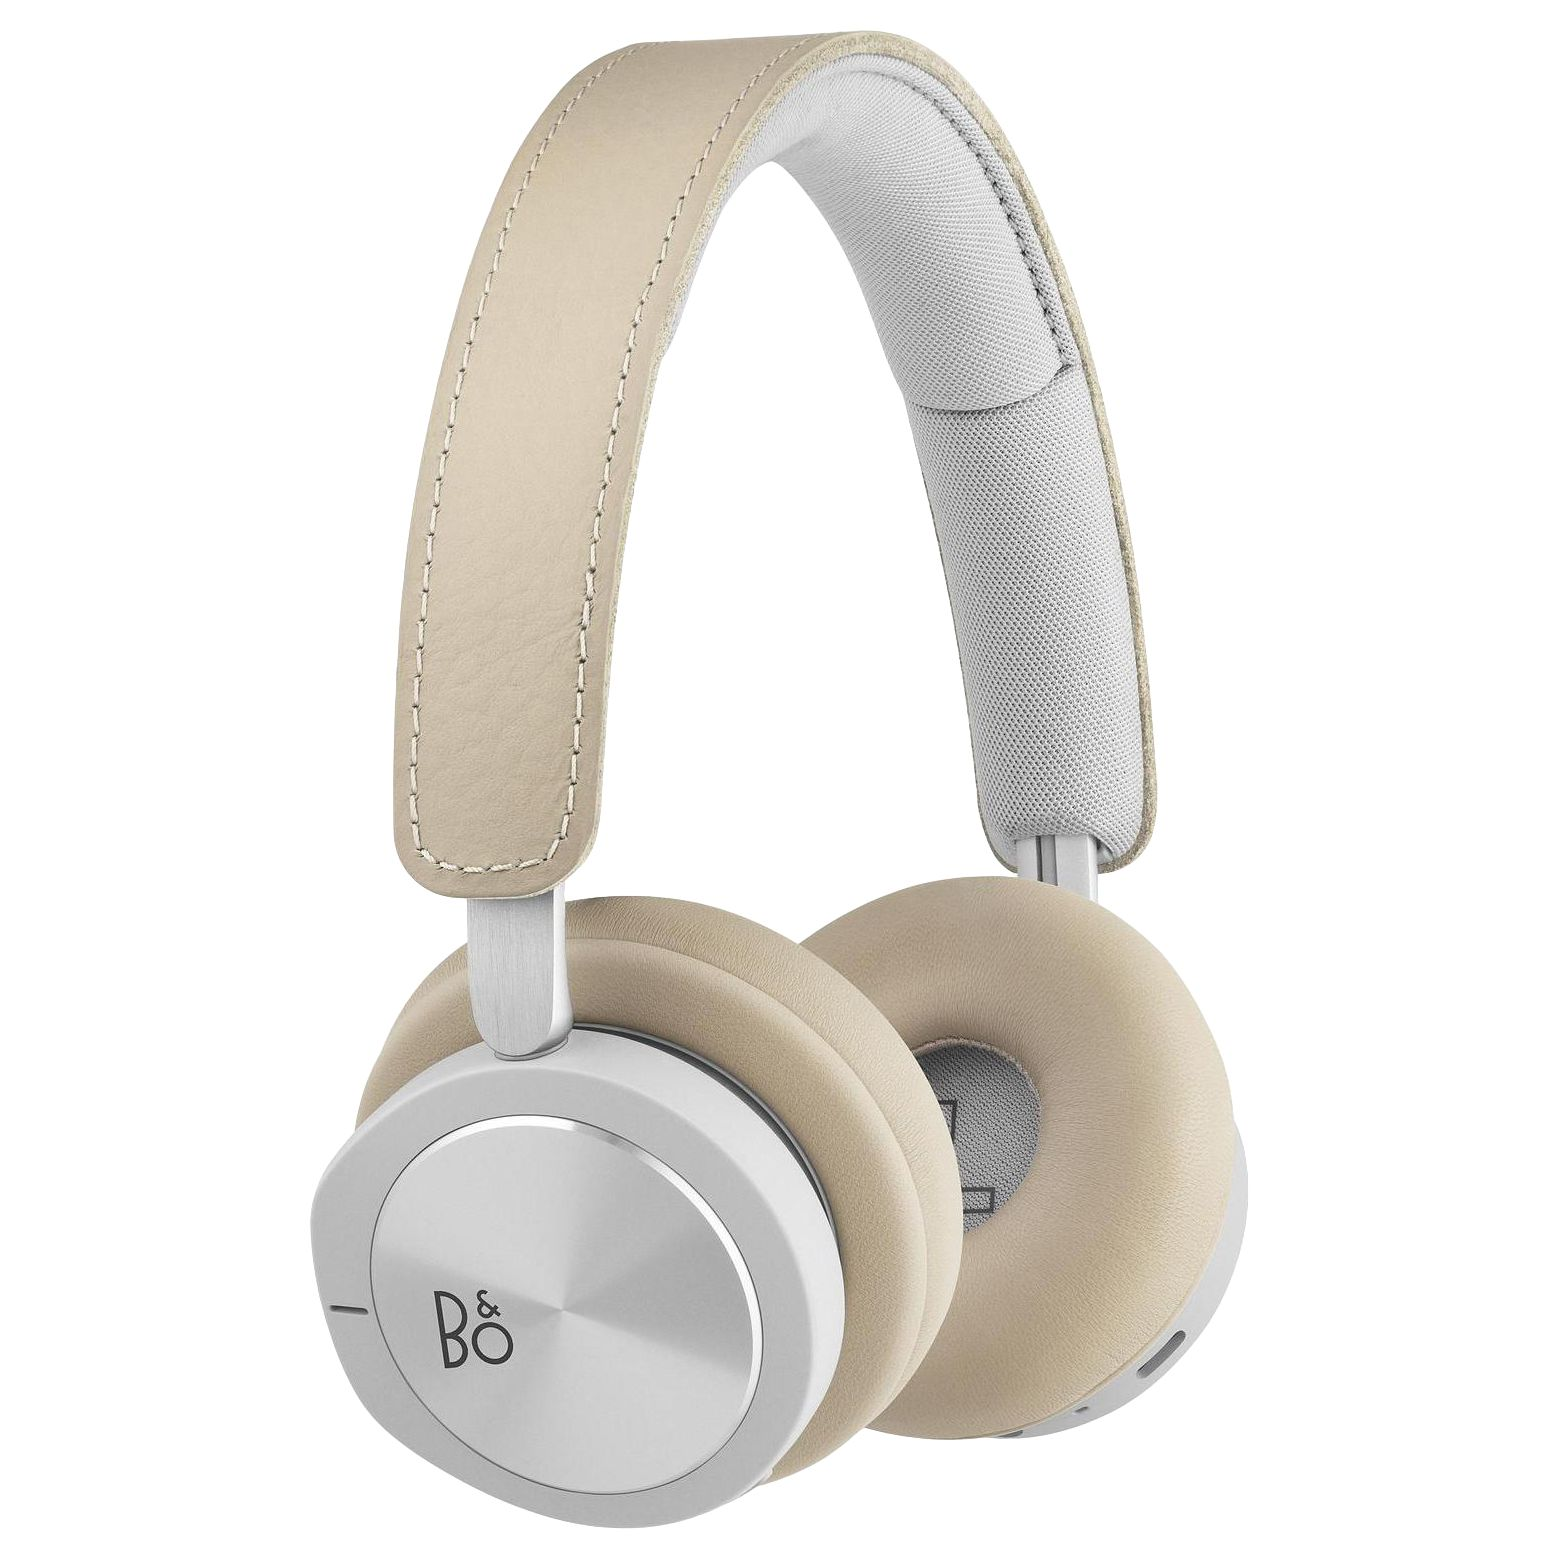 Bang & Olufsen Bang & Olufsen Beoplay H8i Wireless Bluetooth Active Noise Cancelling On-Ear Headphones with Transparency Mode